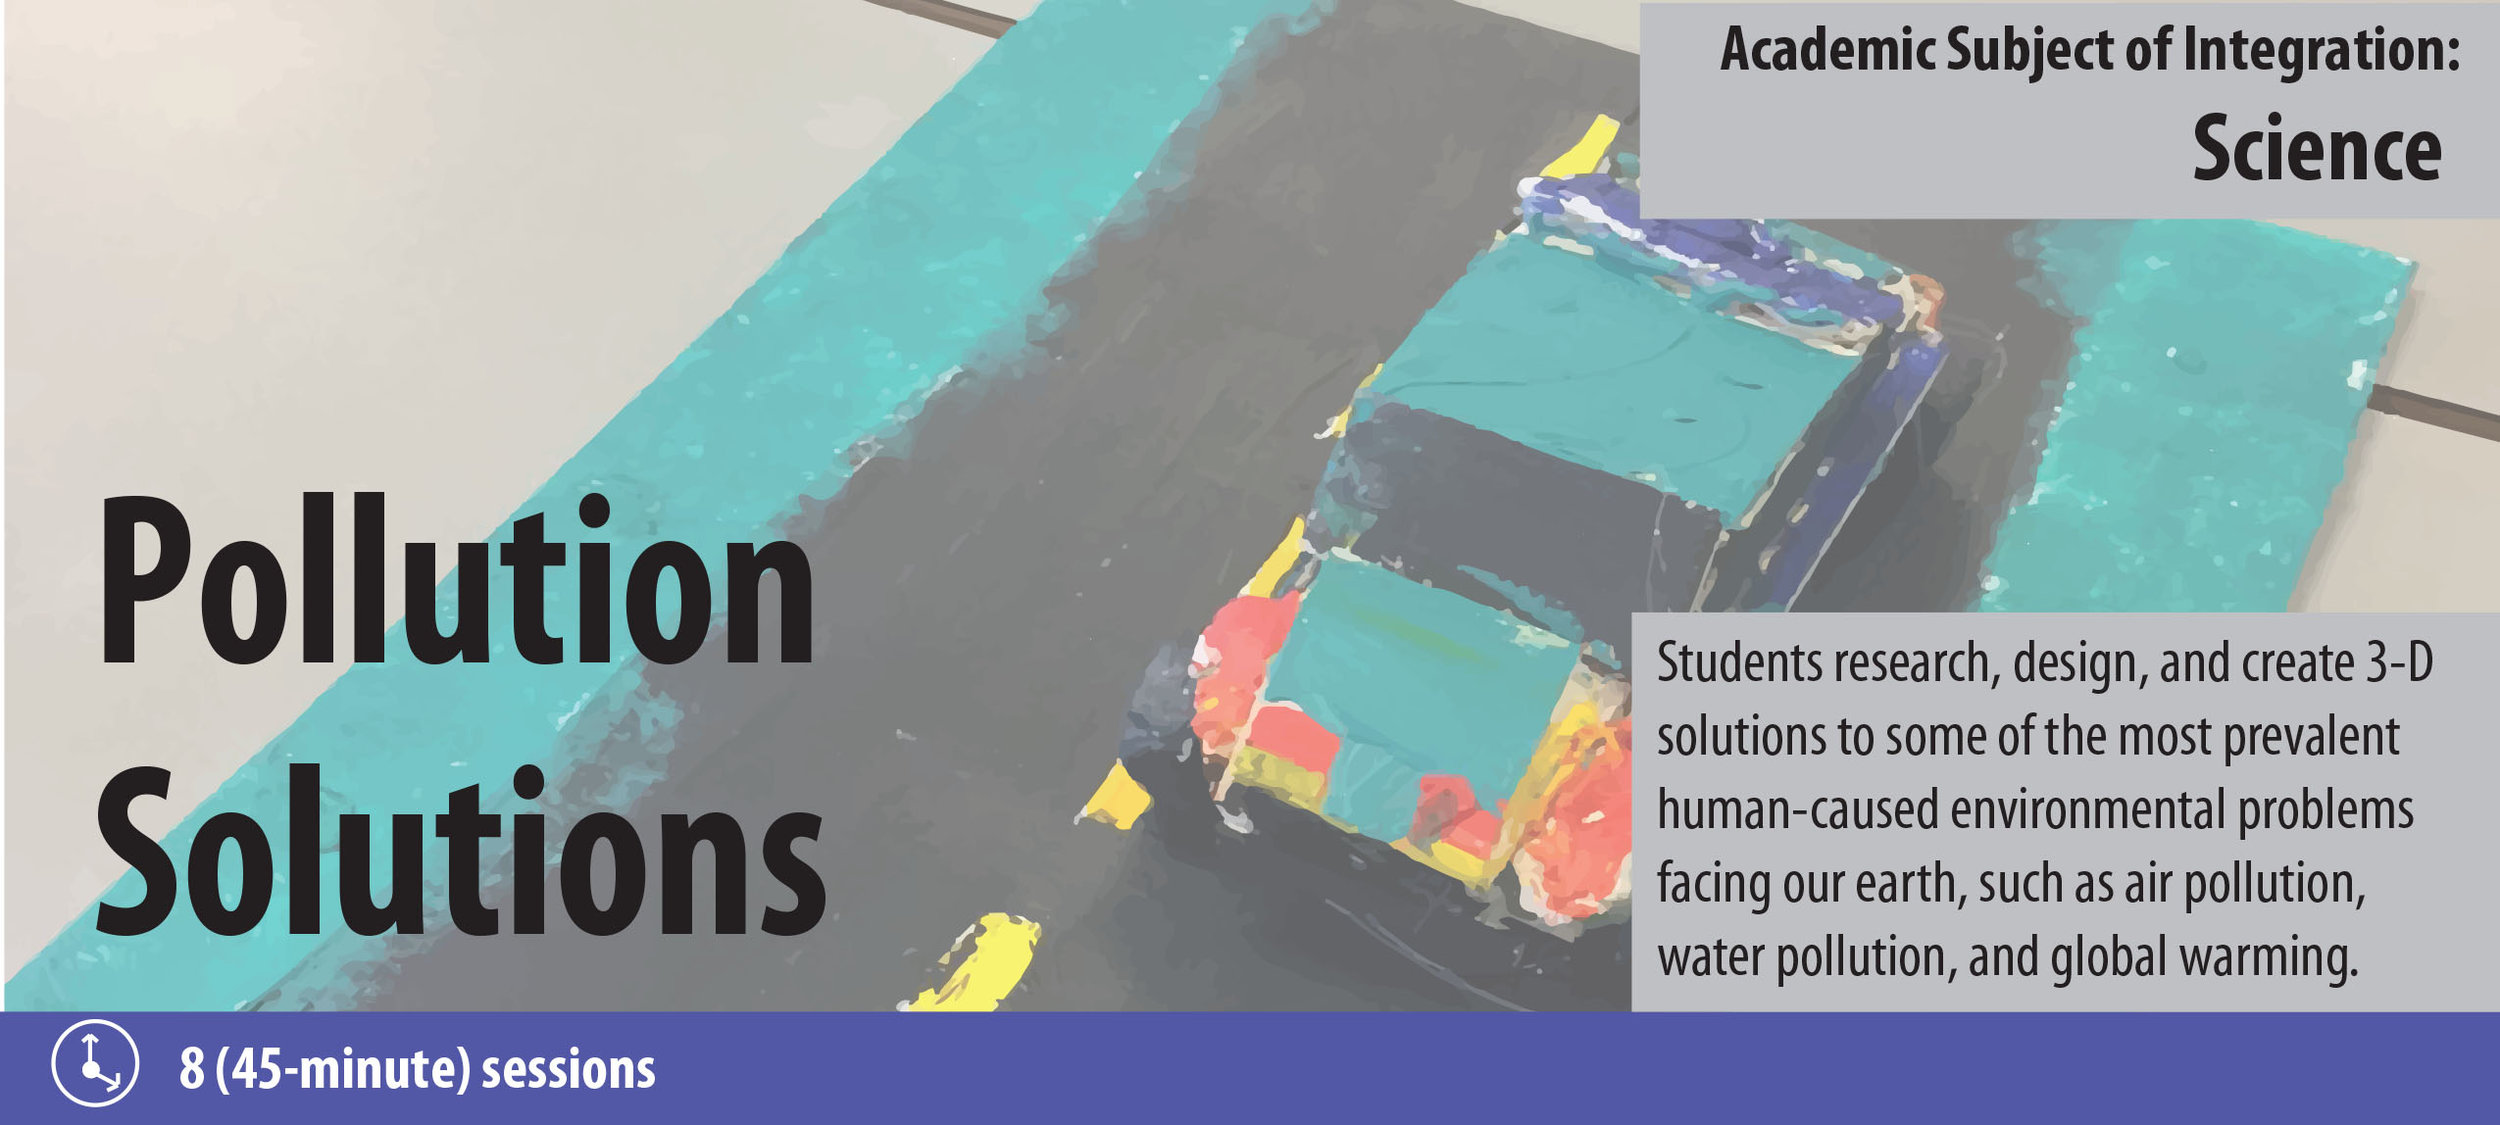 Pollution Solutions_Header.jpg